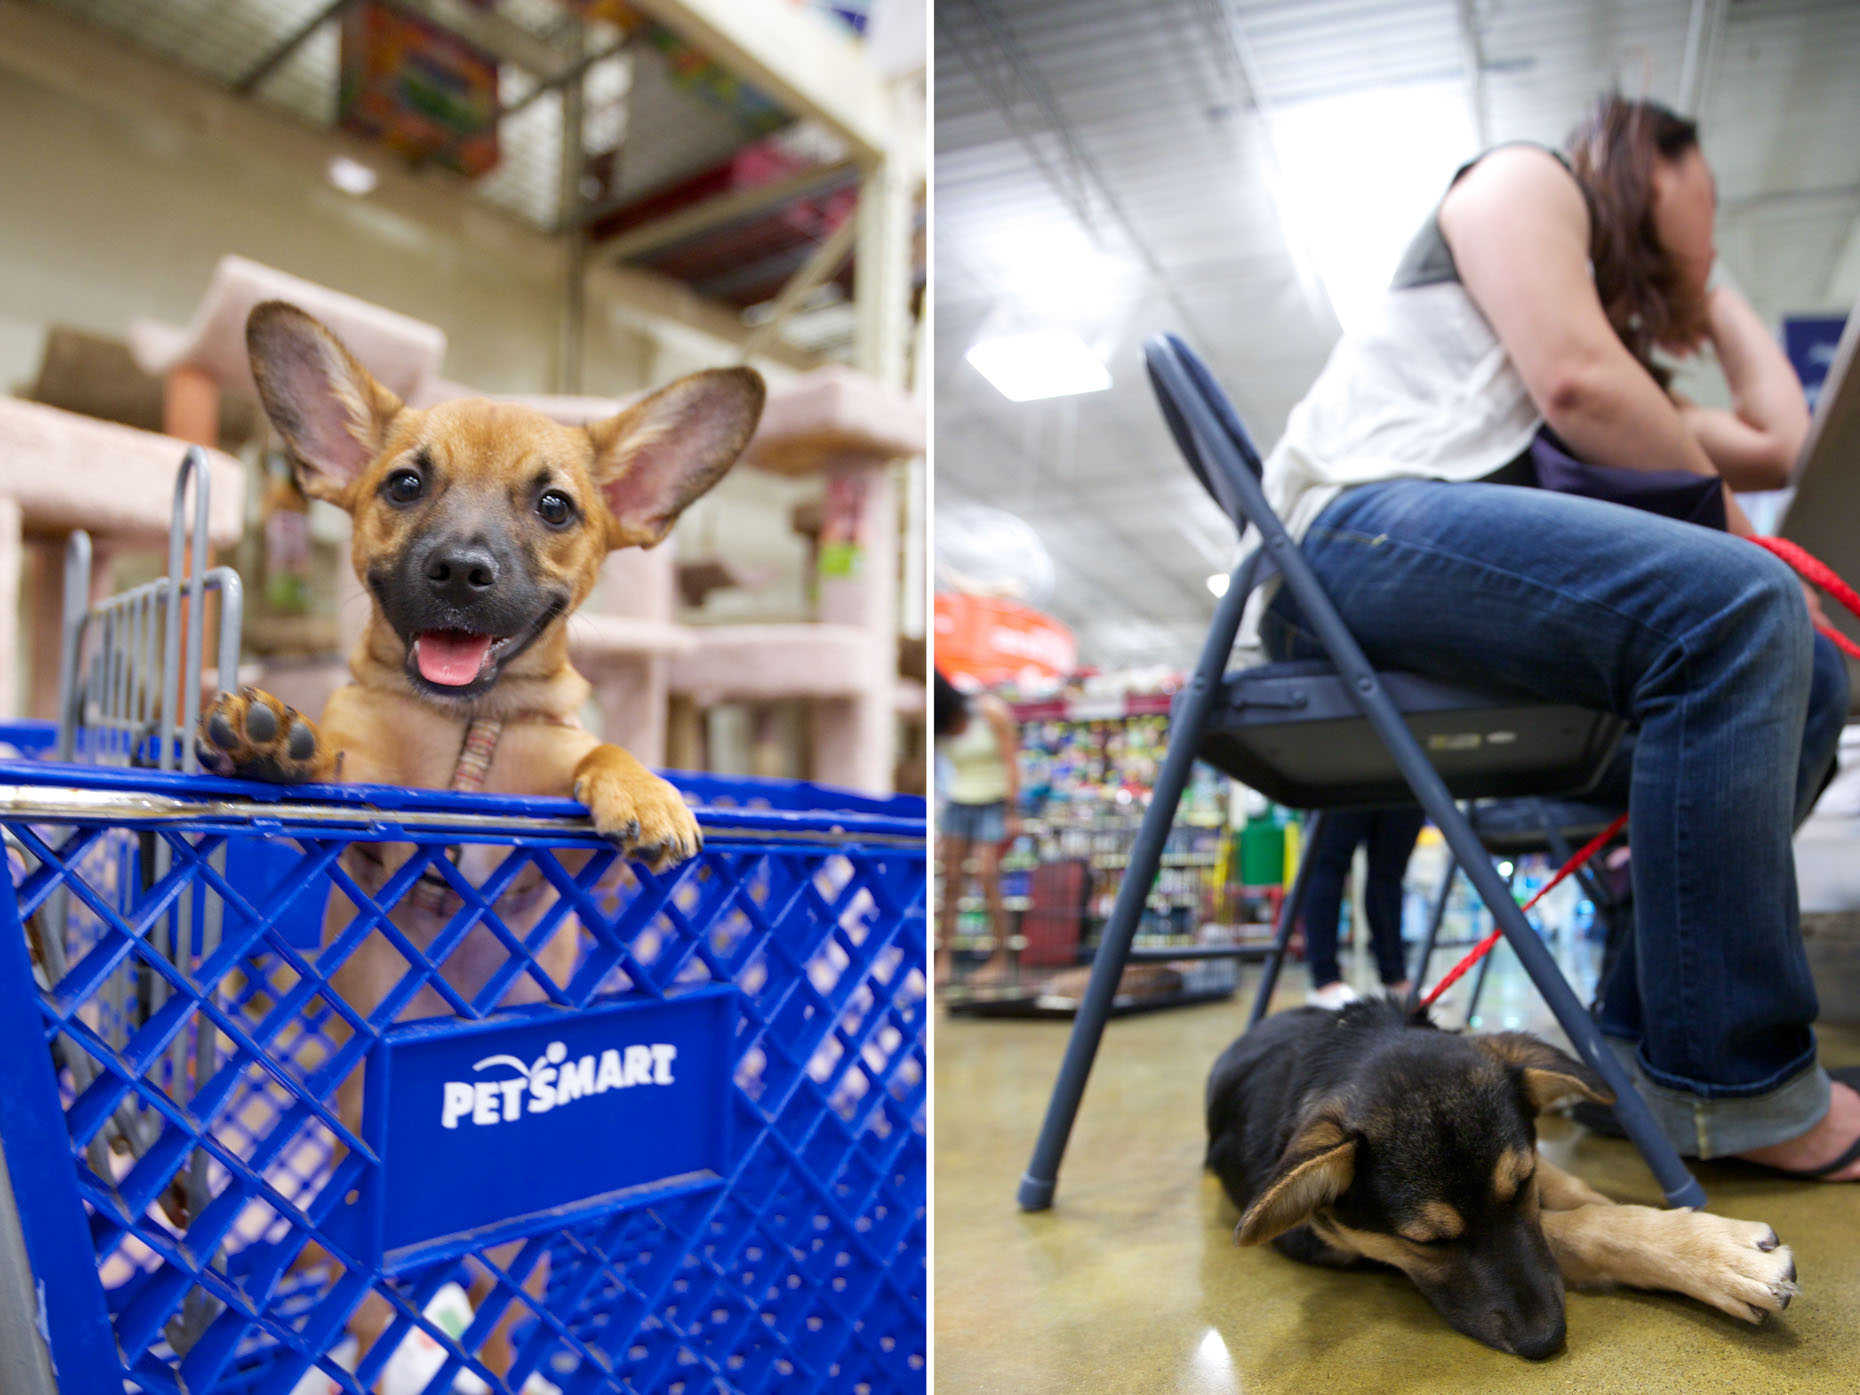 Commercial Photography | Dog in Shopping Cart and Under Chair by Mark Rogers